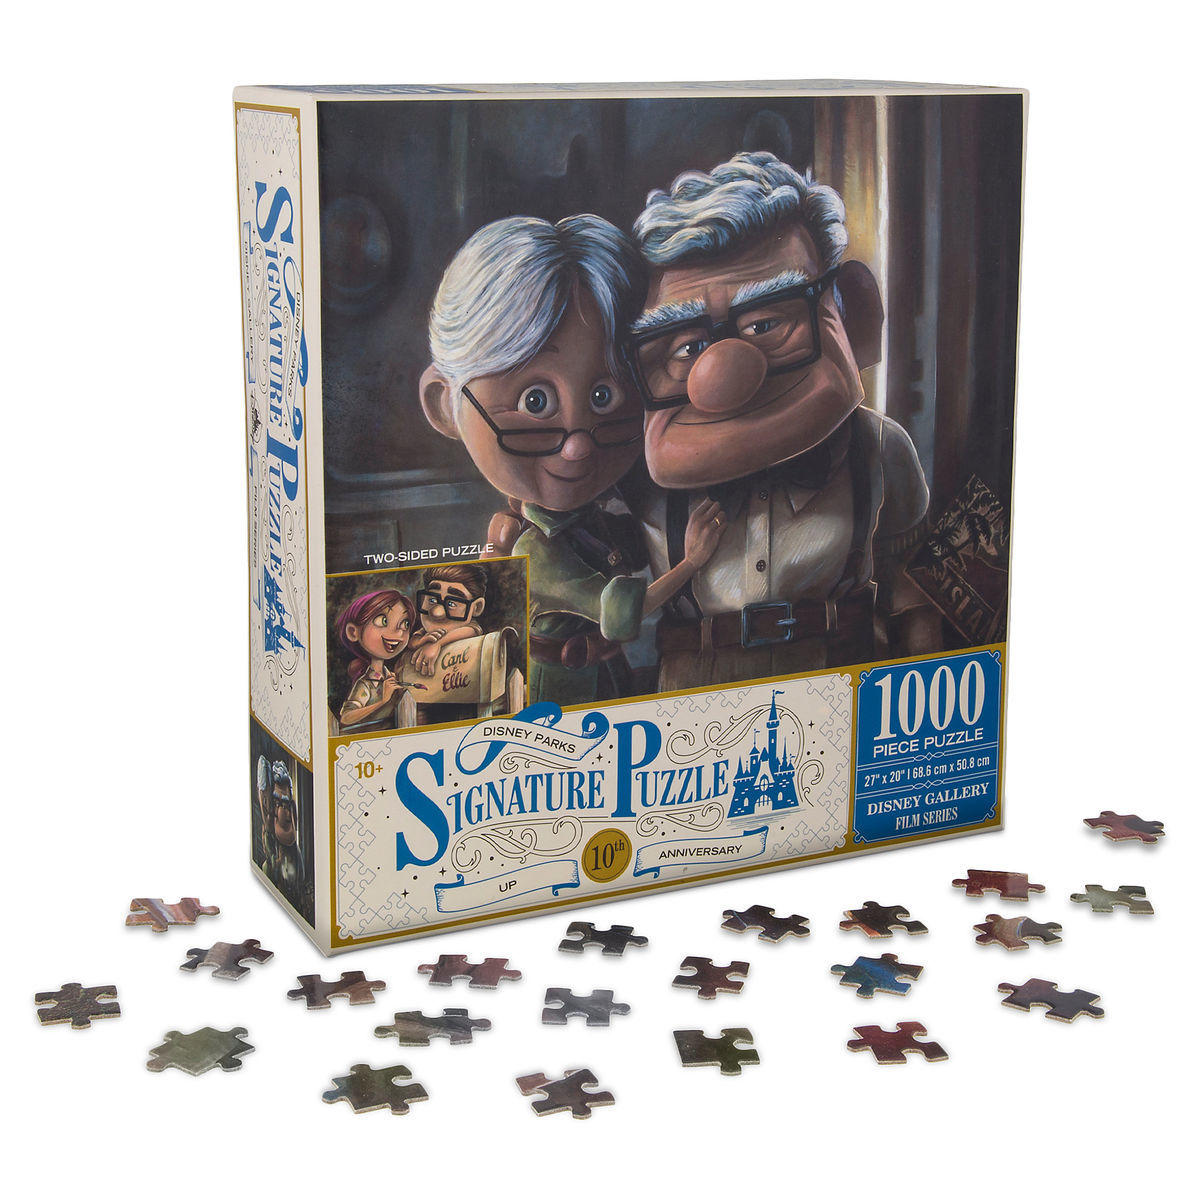 Disney Parks Signature Puzzle - Up - Carl and Ellie 10th Anniversary